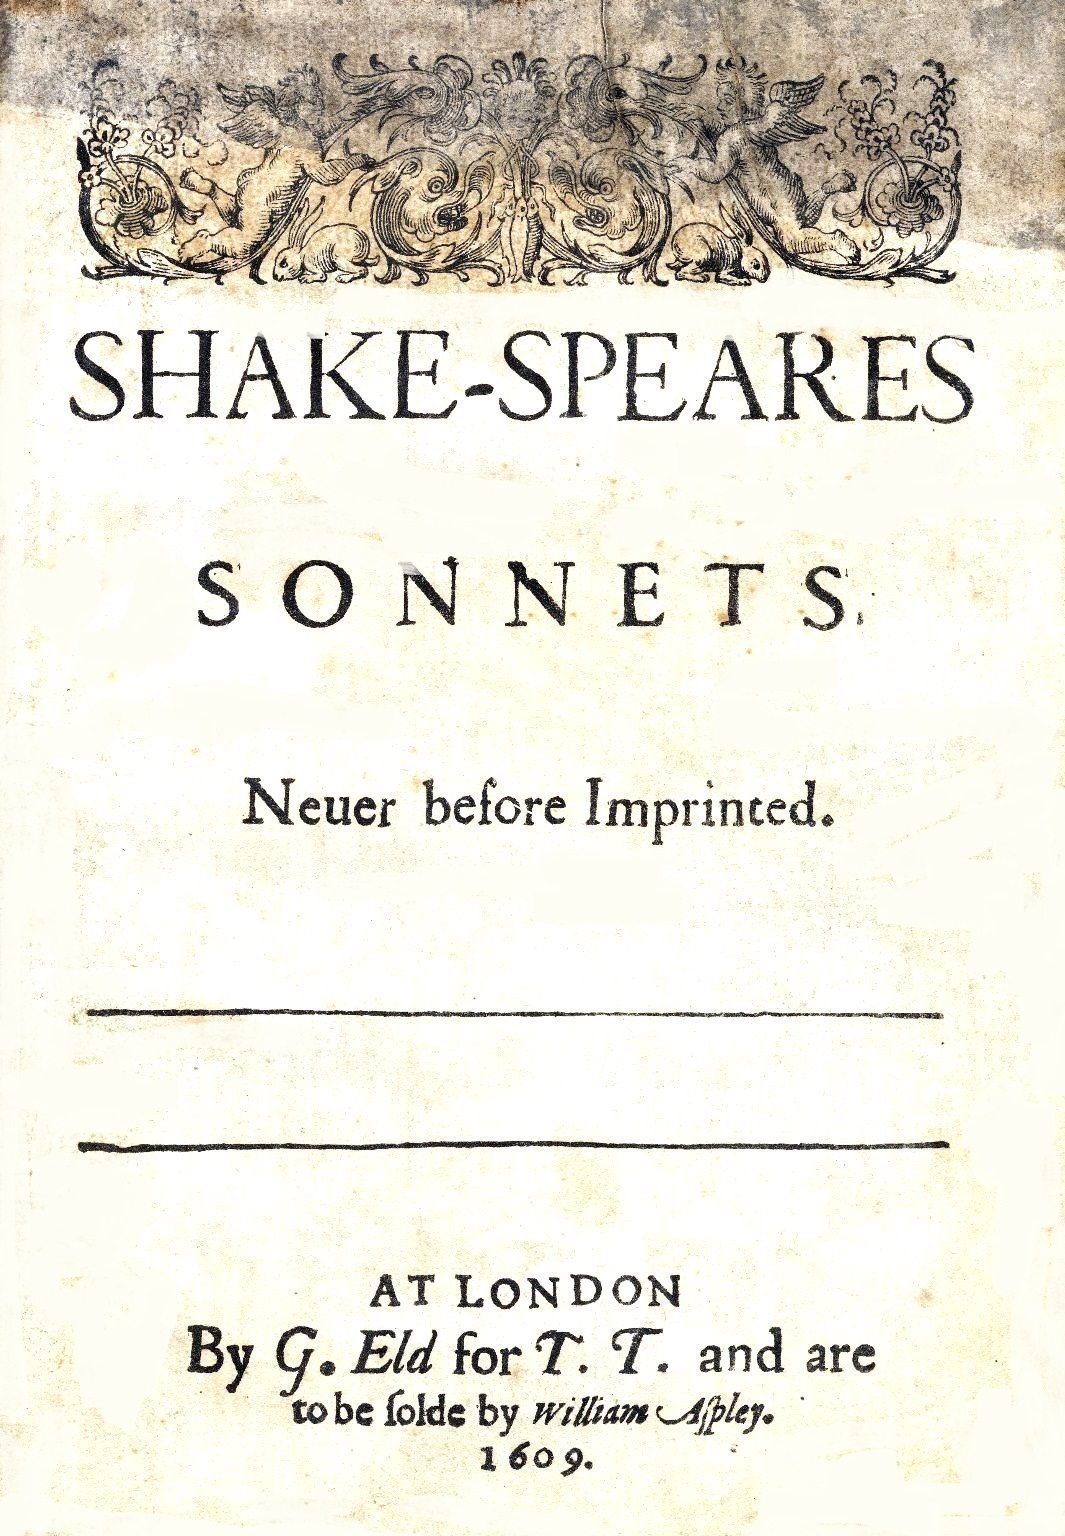 What is the theme of Shakespeare's Sonnet 18?